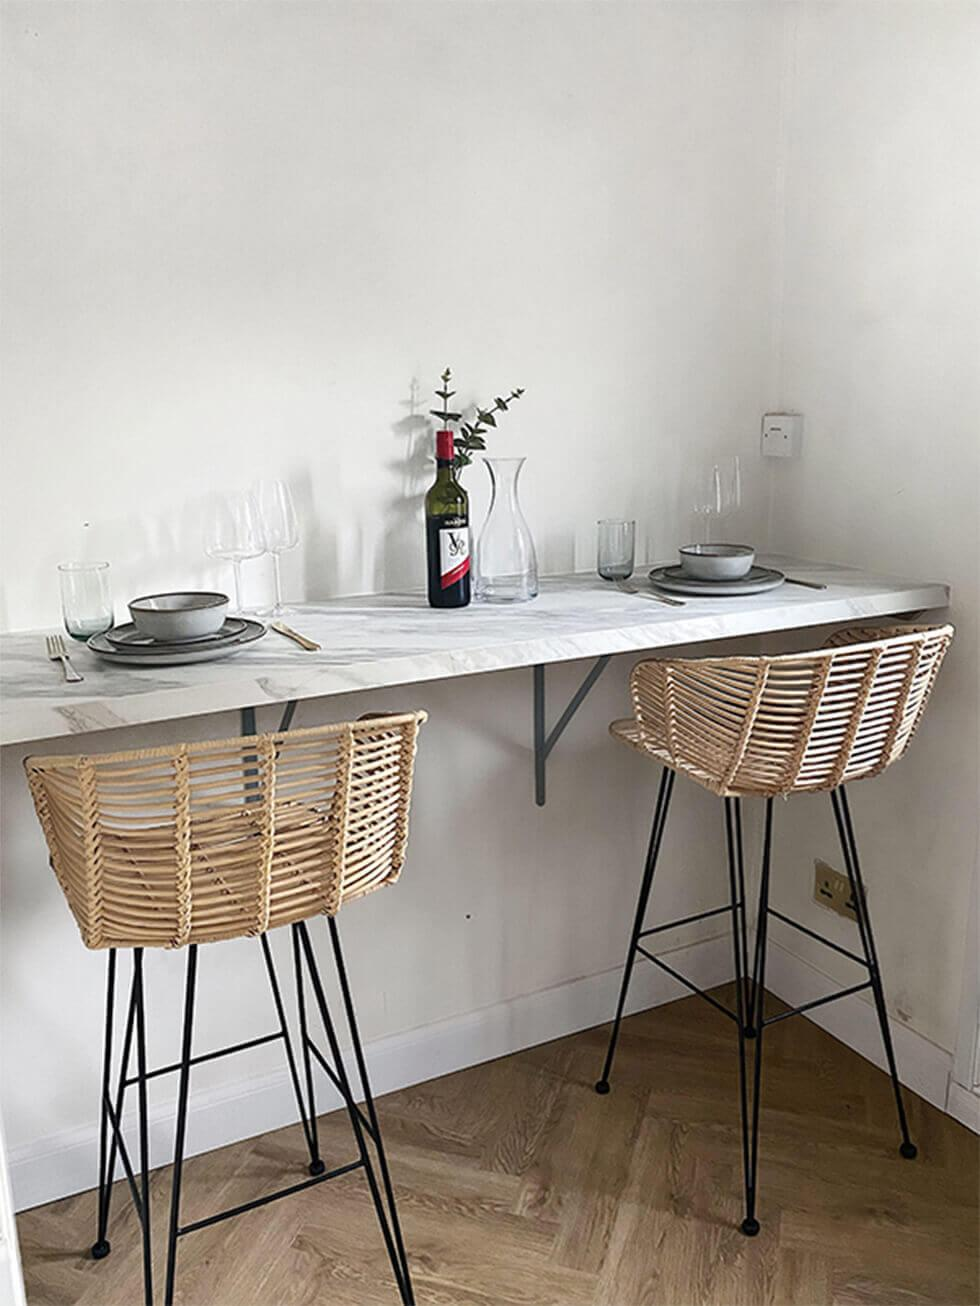 Cosy bar-style diner in the kitchen